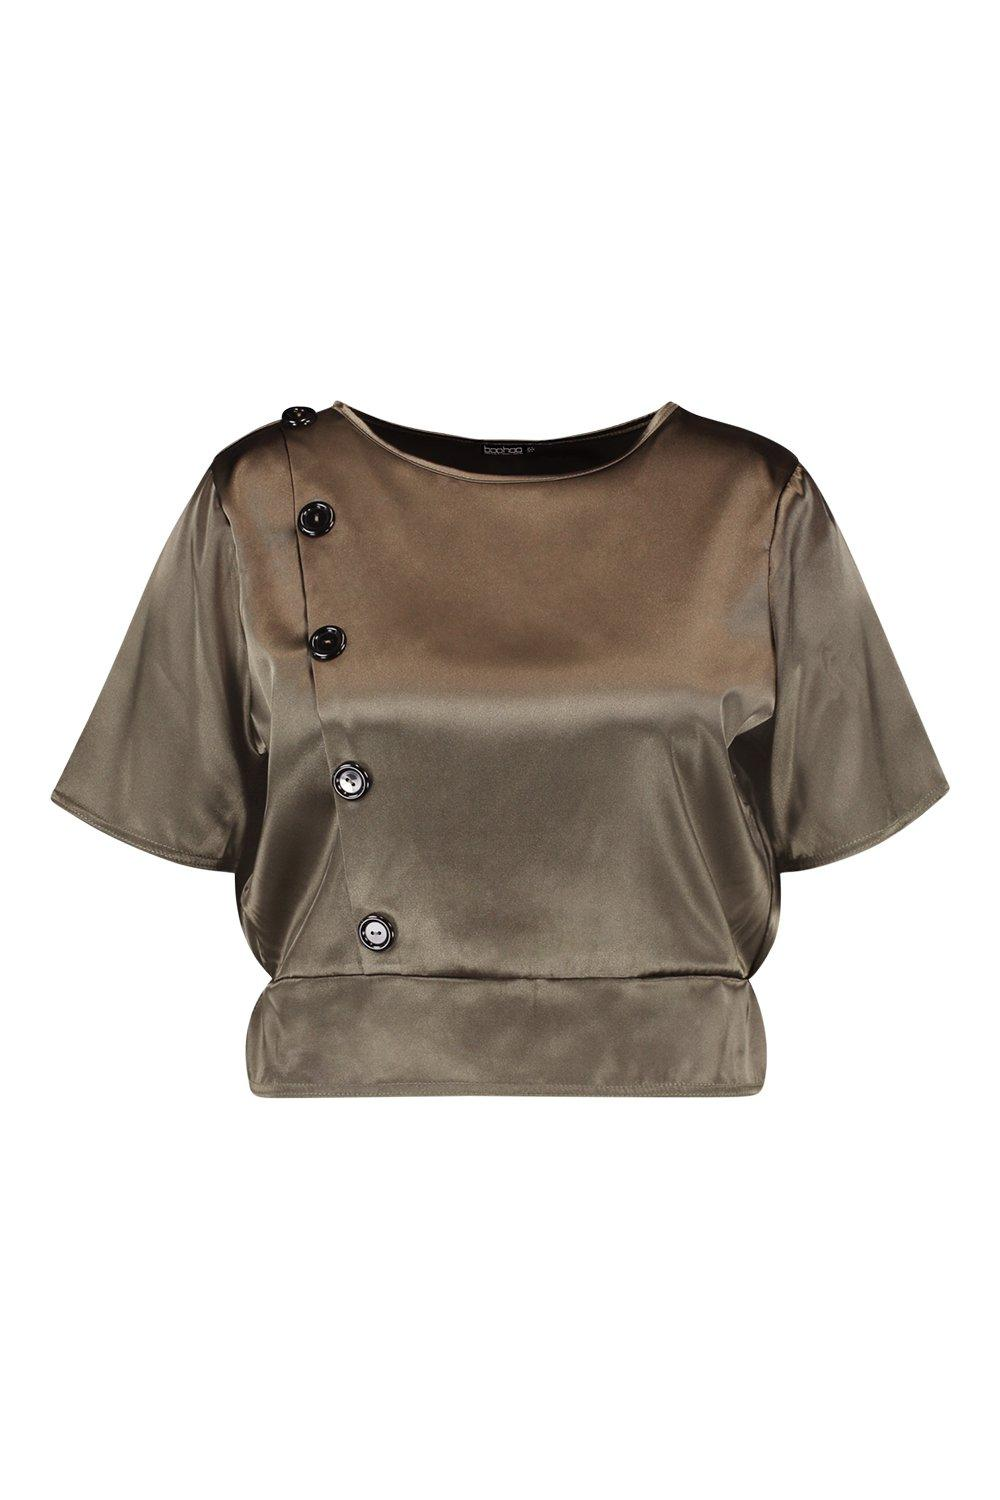 Plus Satin Top Smock khaki Button ZW7701qHnA